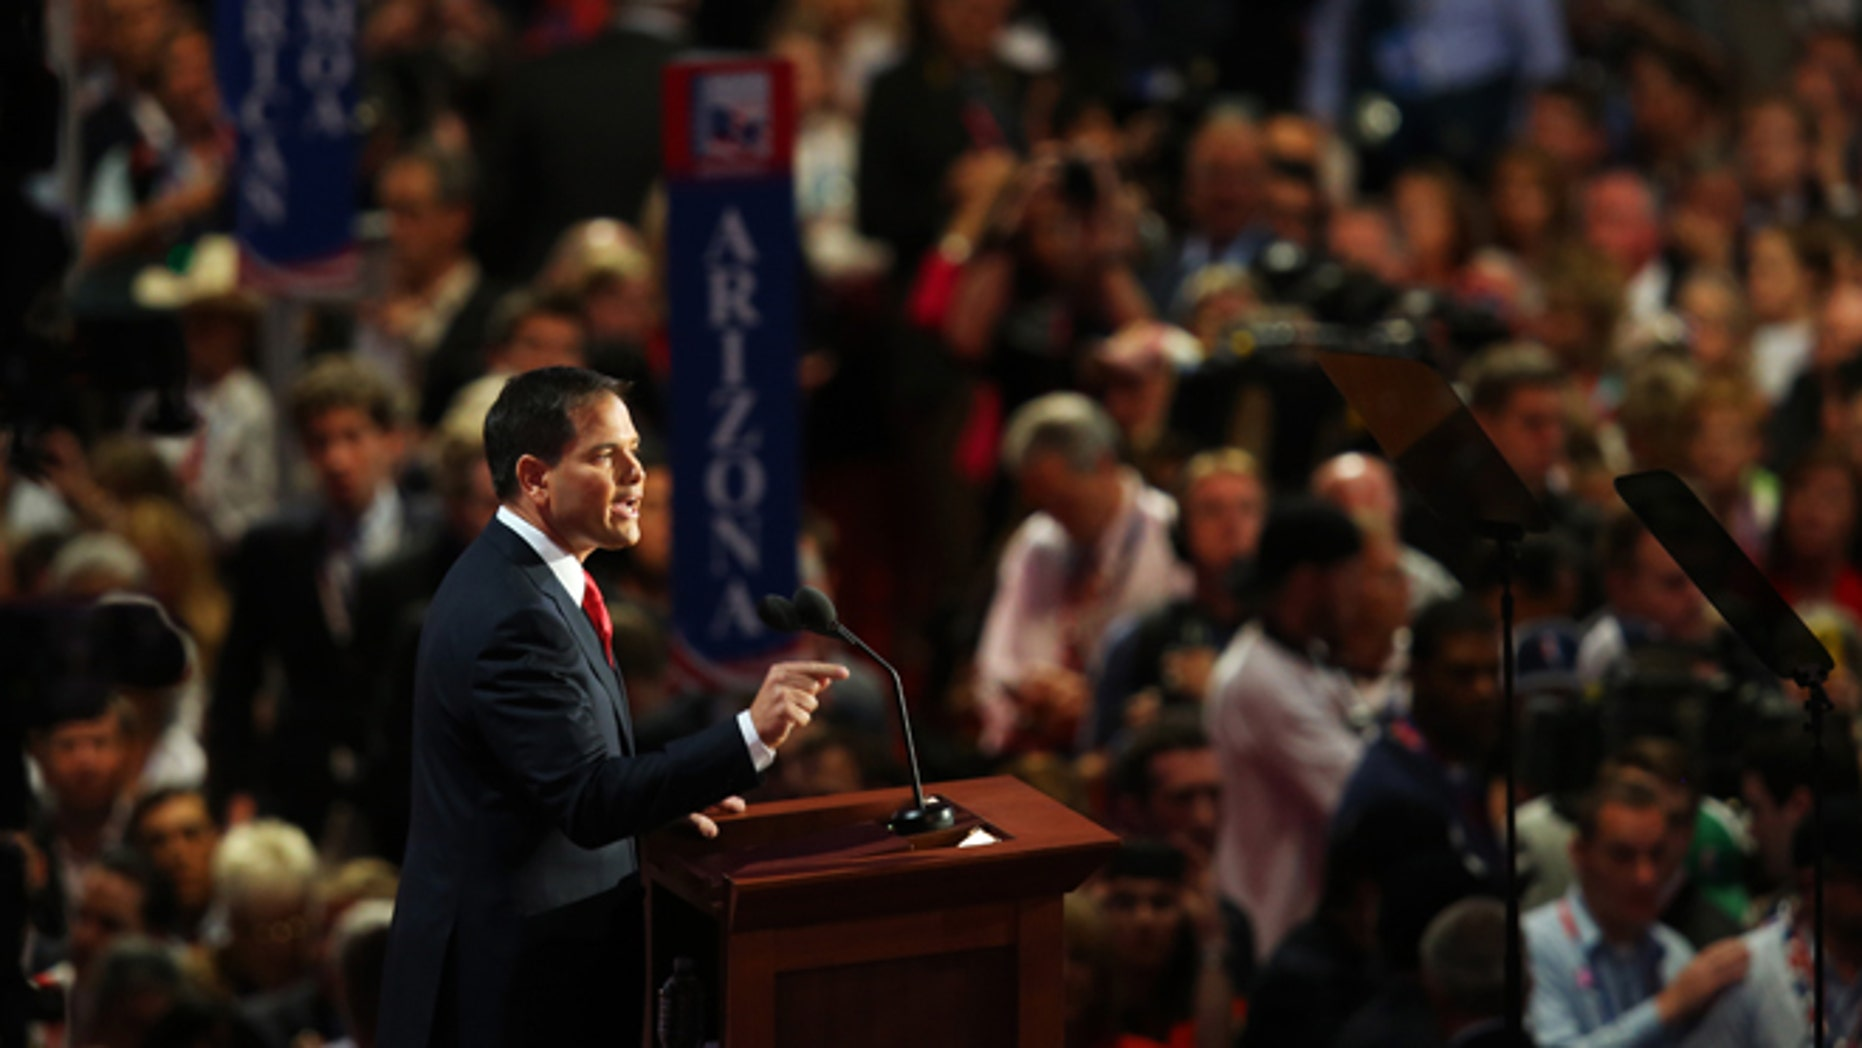 TAMPA, FL - AUGUST 30:  U.S. Senator Marco Rubio (FL) speaks during the final day of the Republican National Convention at the Tampa Bay Times Forum on August 30, 2012 in Tampa, Florida. Former Massachusetts Gov. Mitt Romney was nominated as the Republican presidential candidate during the RNC which will conclude today.  (Photo by Joe Raedle/Getty Images)